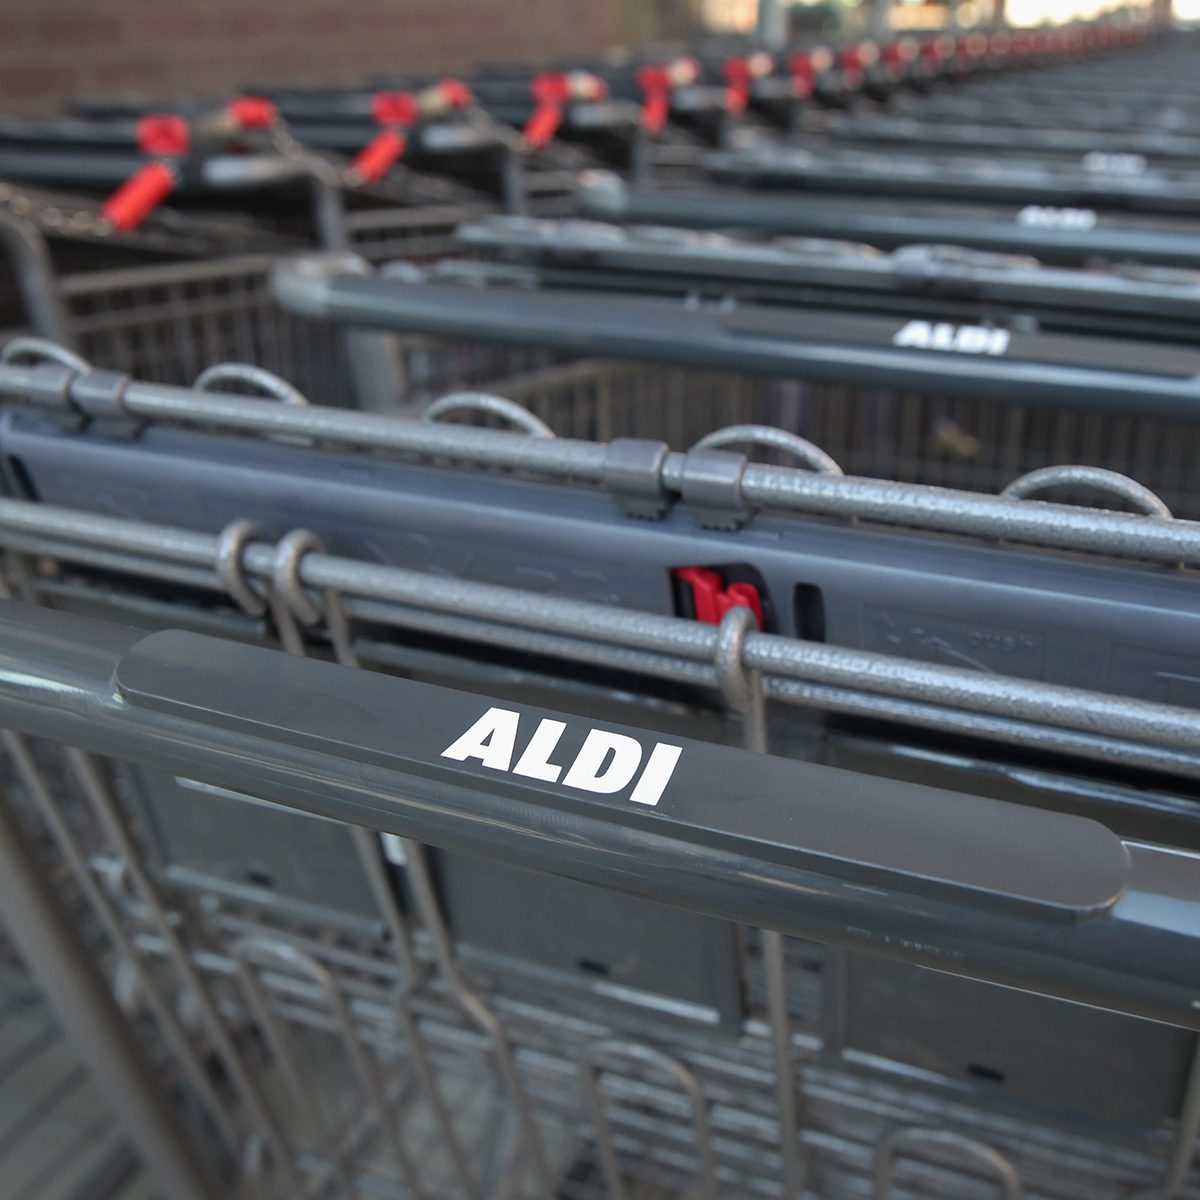 CHICAGO, IL - JUNE 12: Shopping carts sit outside an Aldi grocery store on June 12, 2017 in Chicago, Illinois. Aldi has announced plans to open 900 new stores in the United States in the next five years. The $3.4 billion capital investment would create 25,000 jobs and make the grocery chain the third largest in the nation behind Wal-Mart and Kroger. (Photo by Scott Olson/Getty Images)